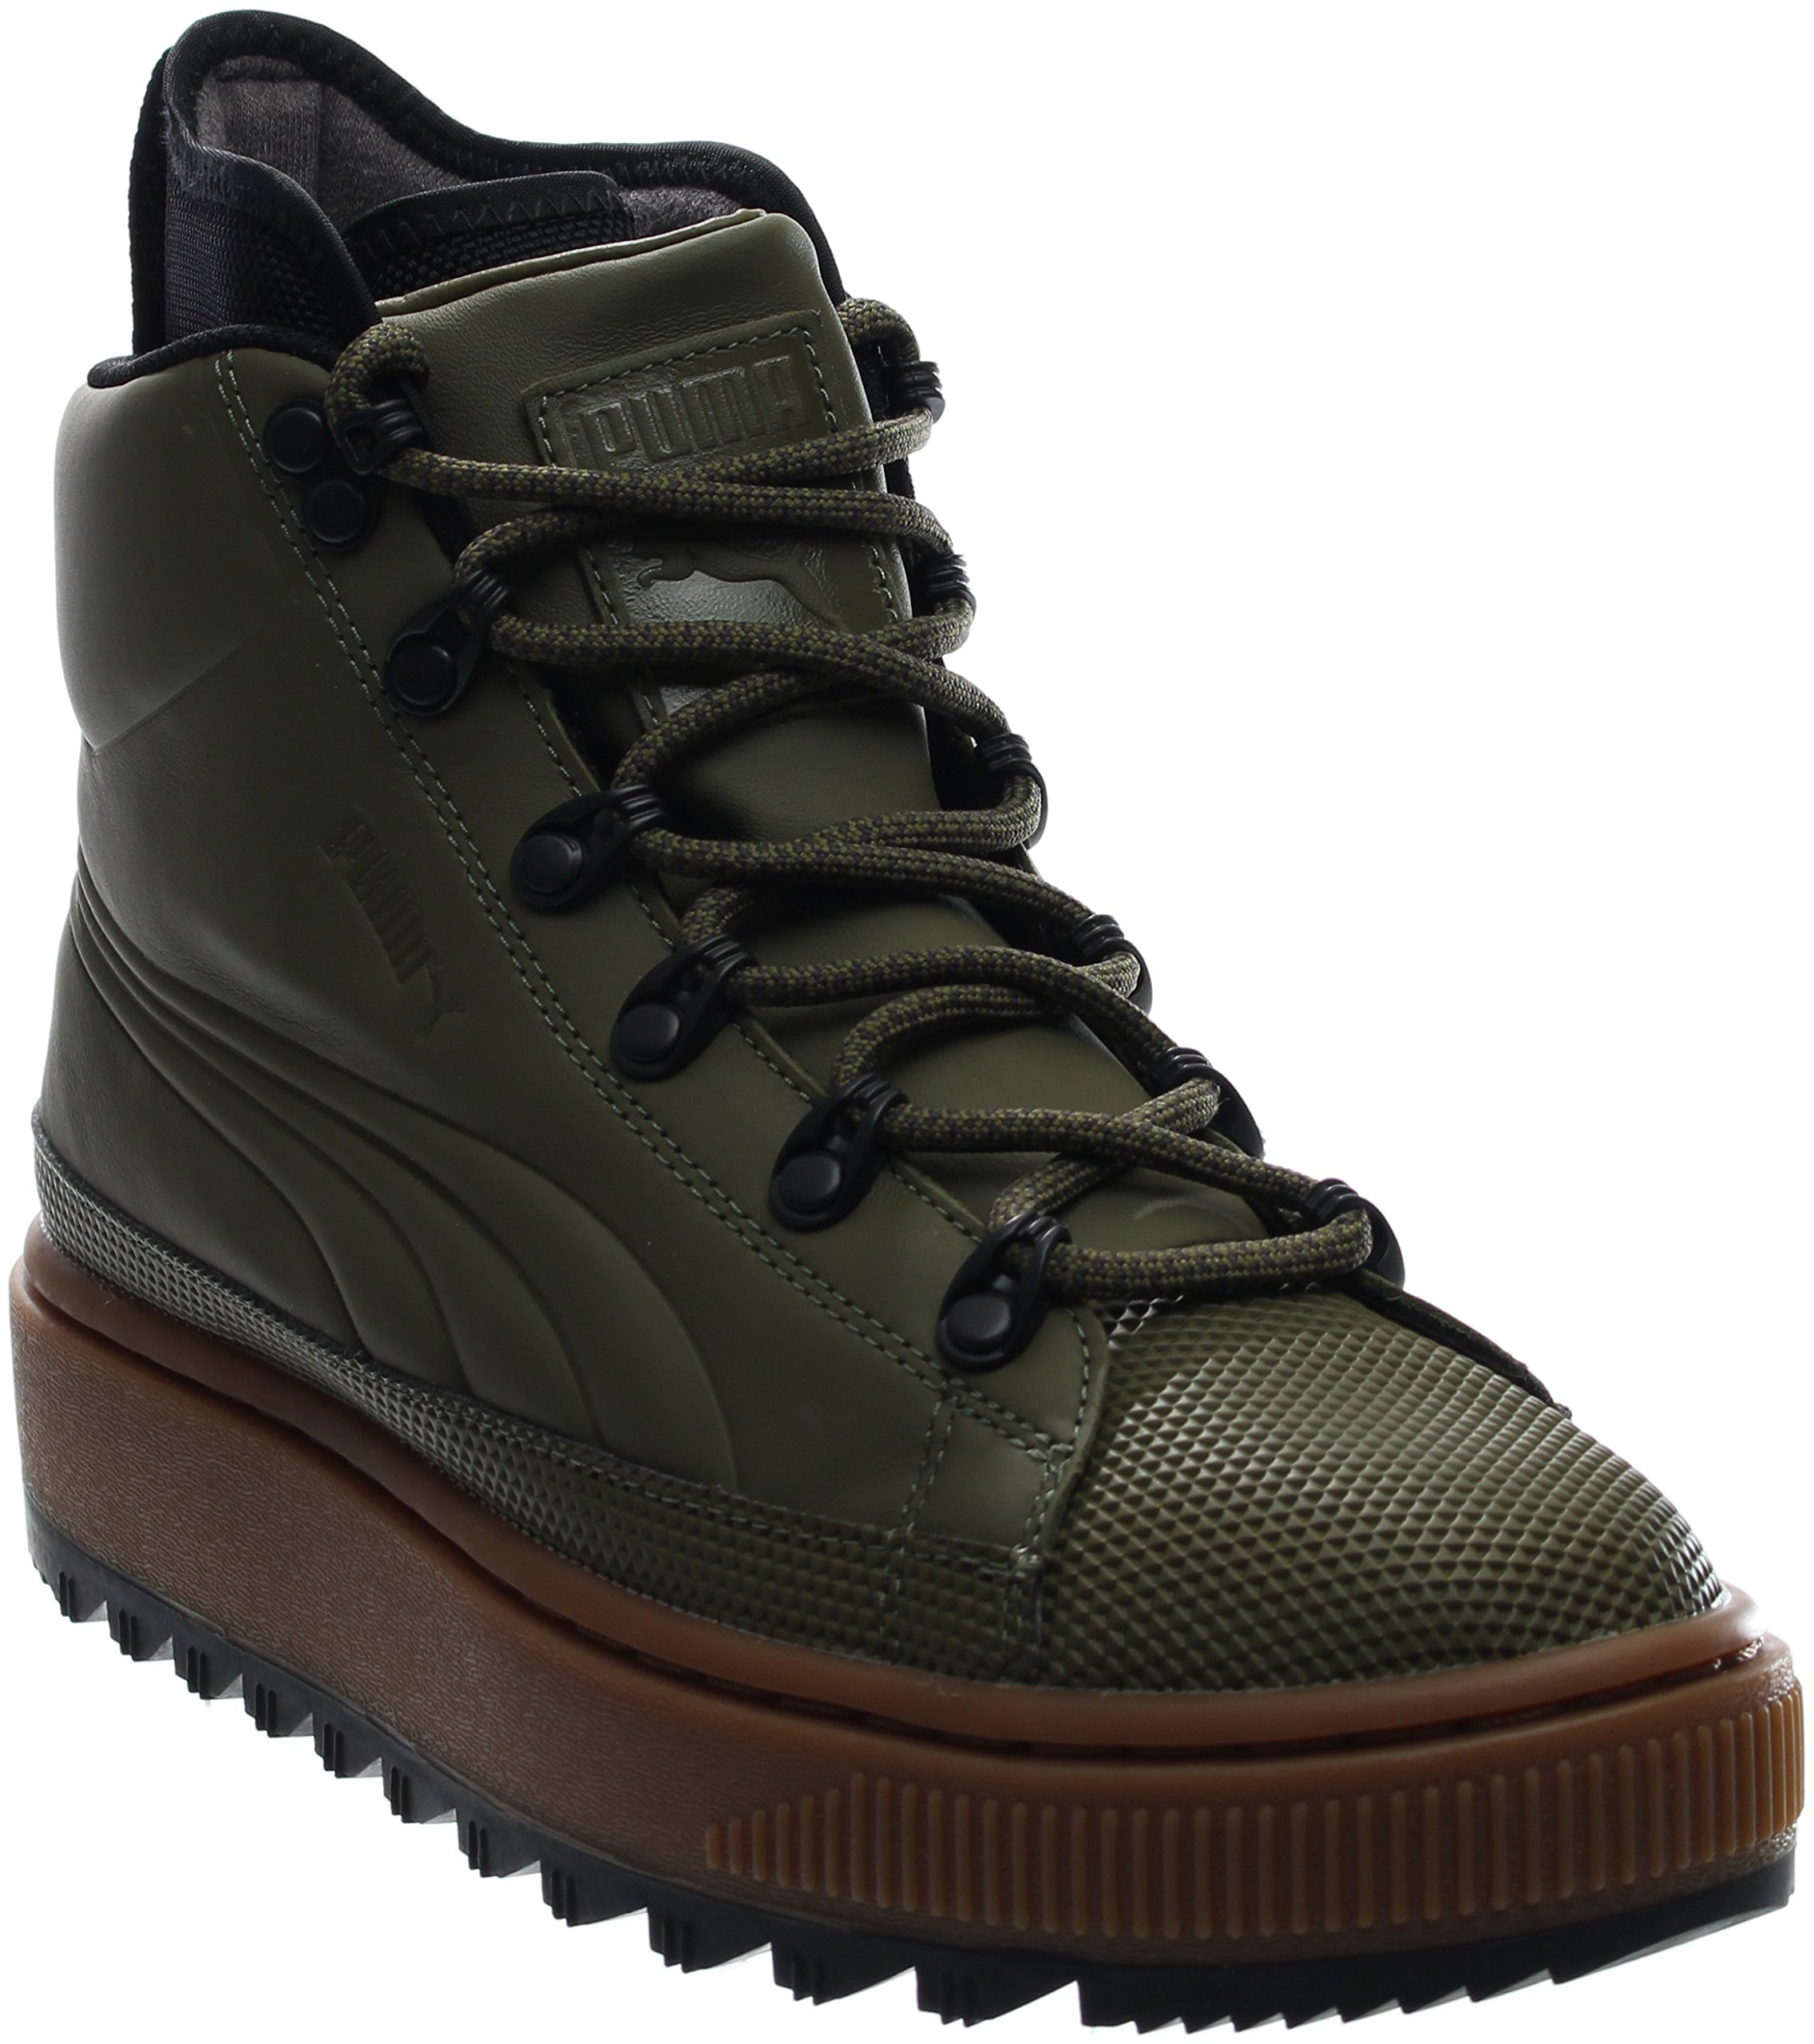 PUMA Men's The Ren Boot Burnt Olive Black Athletic Shoe